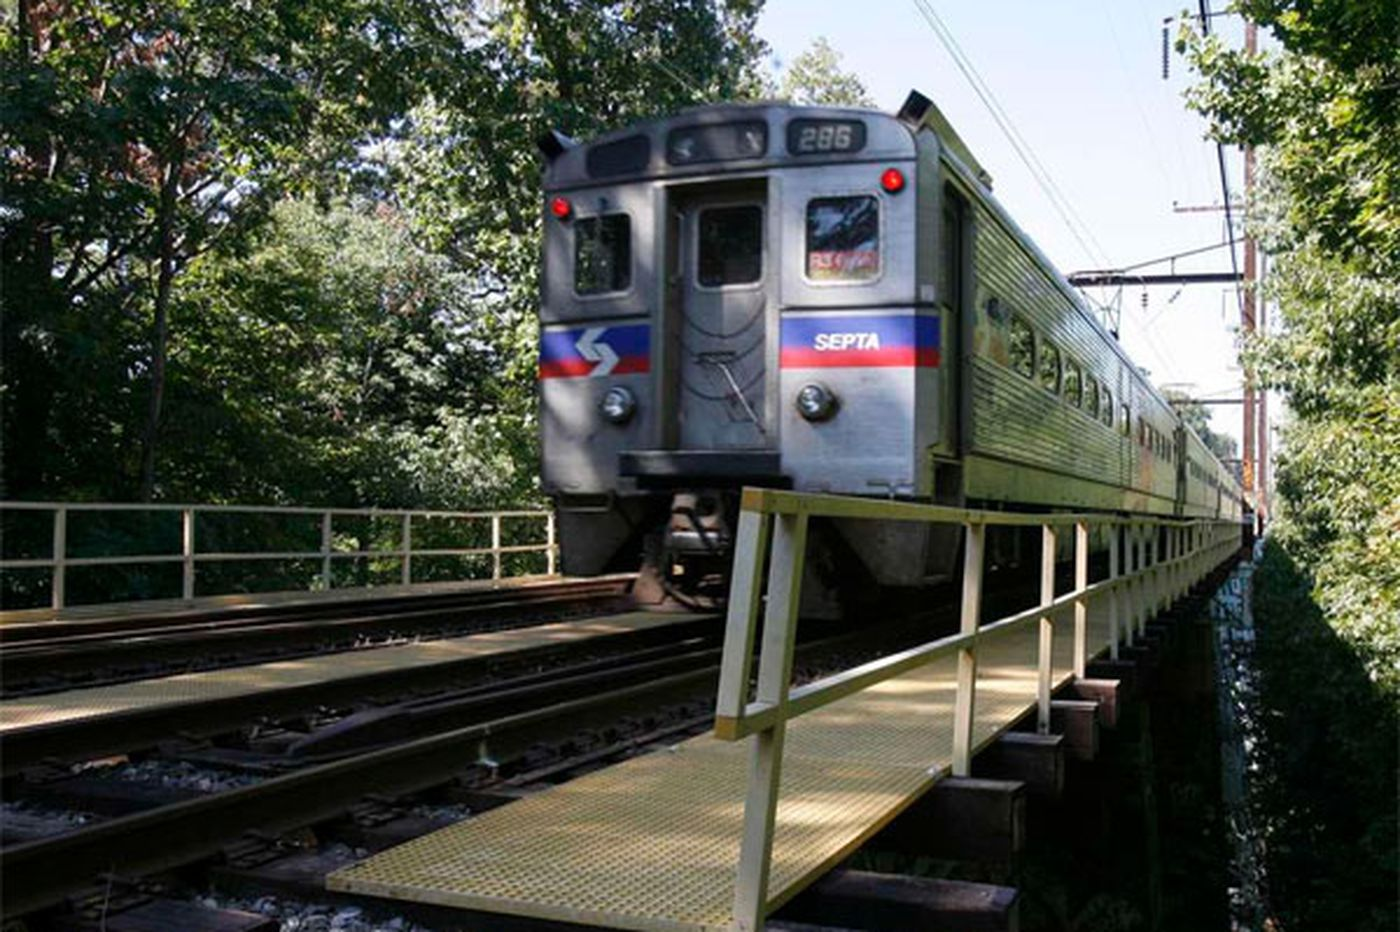 SEPTA aims for happier riders in proposed 5-year plan